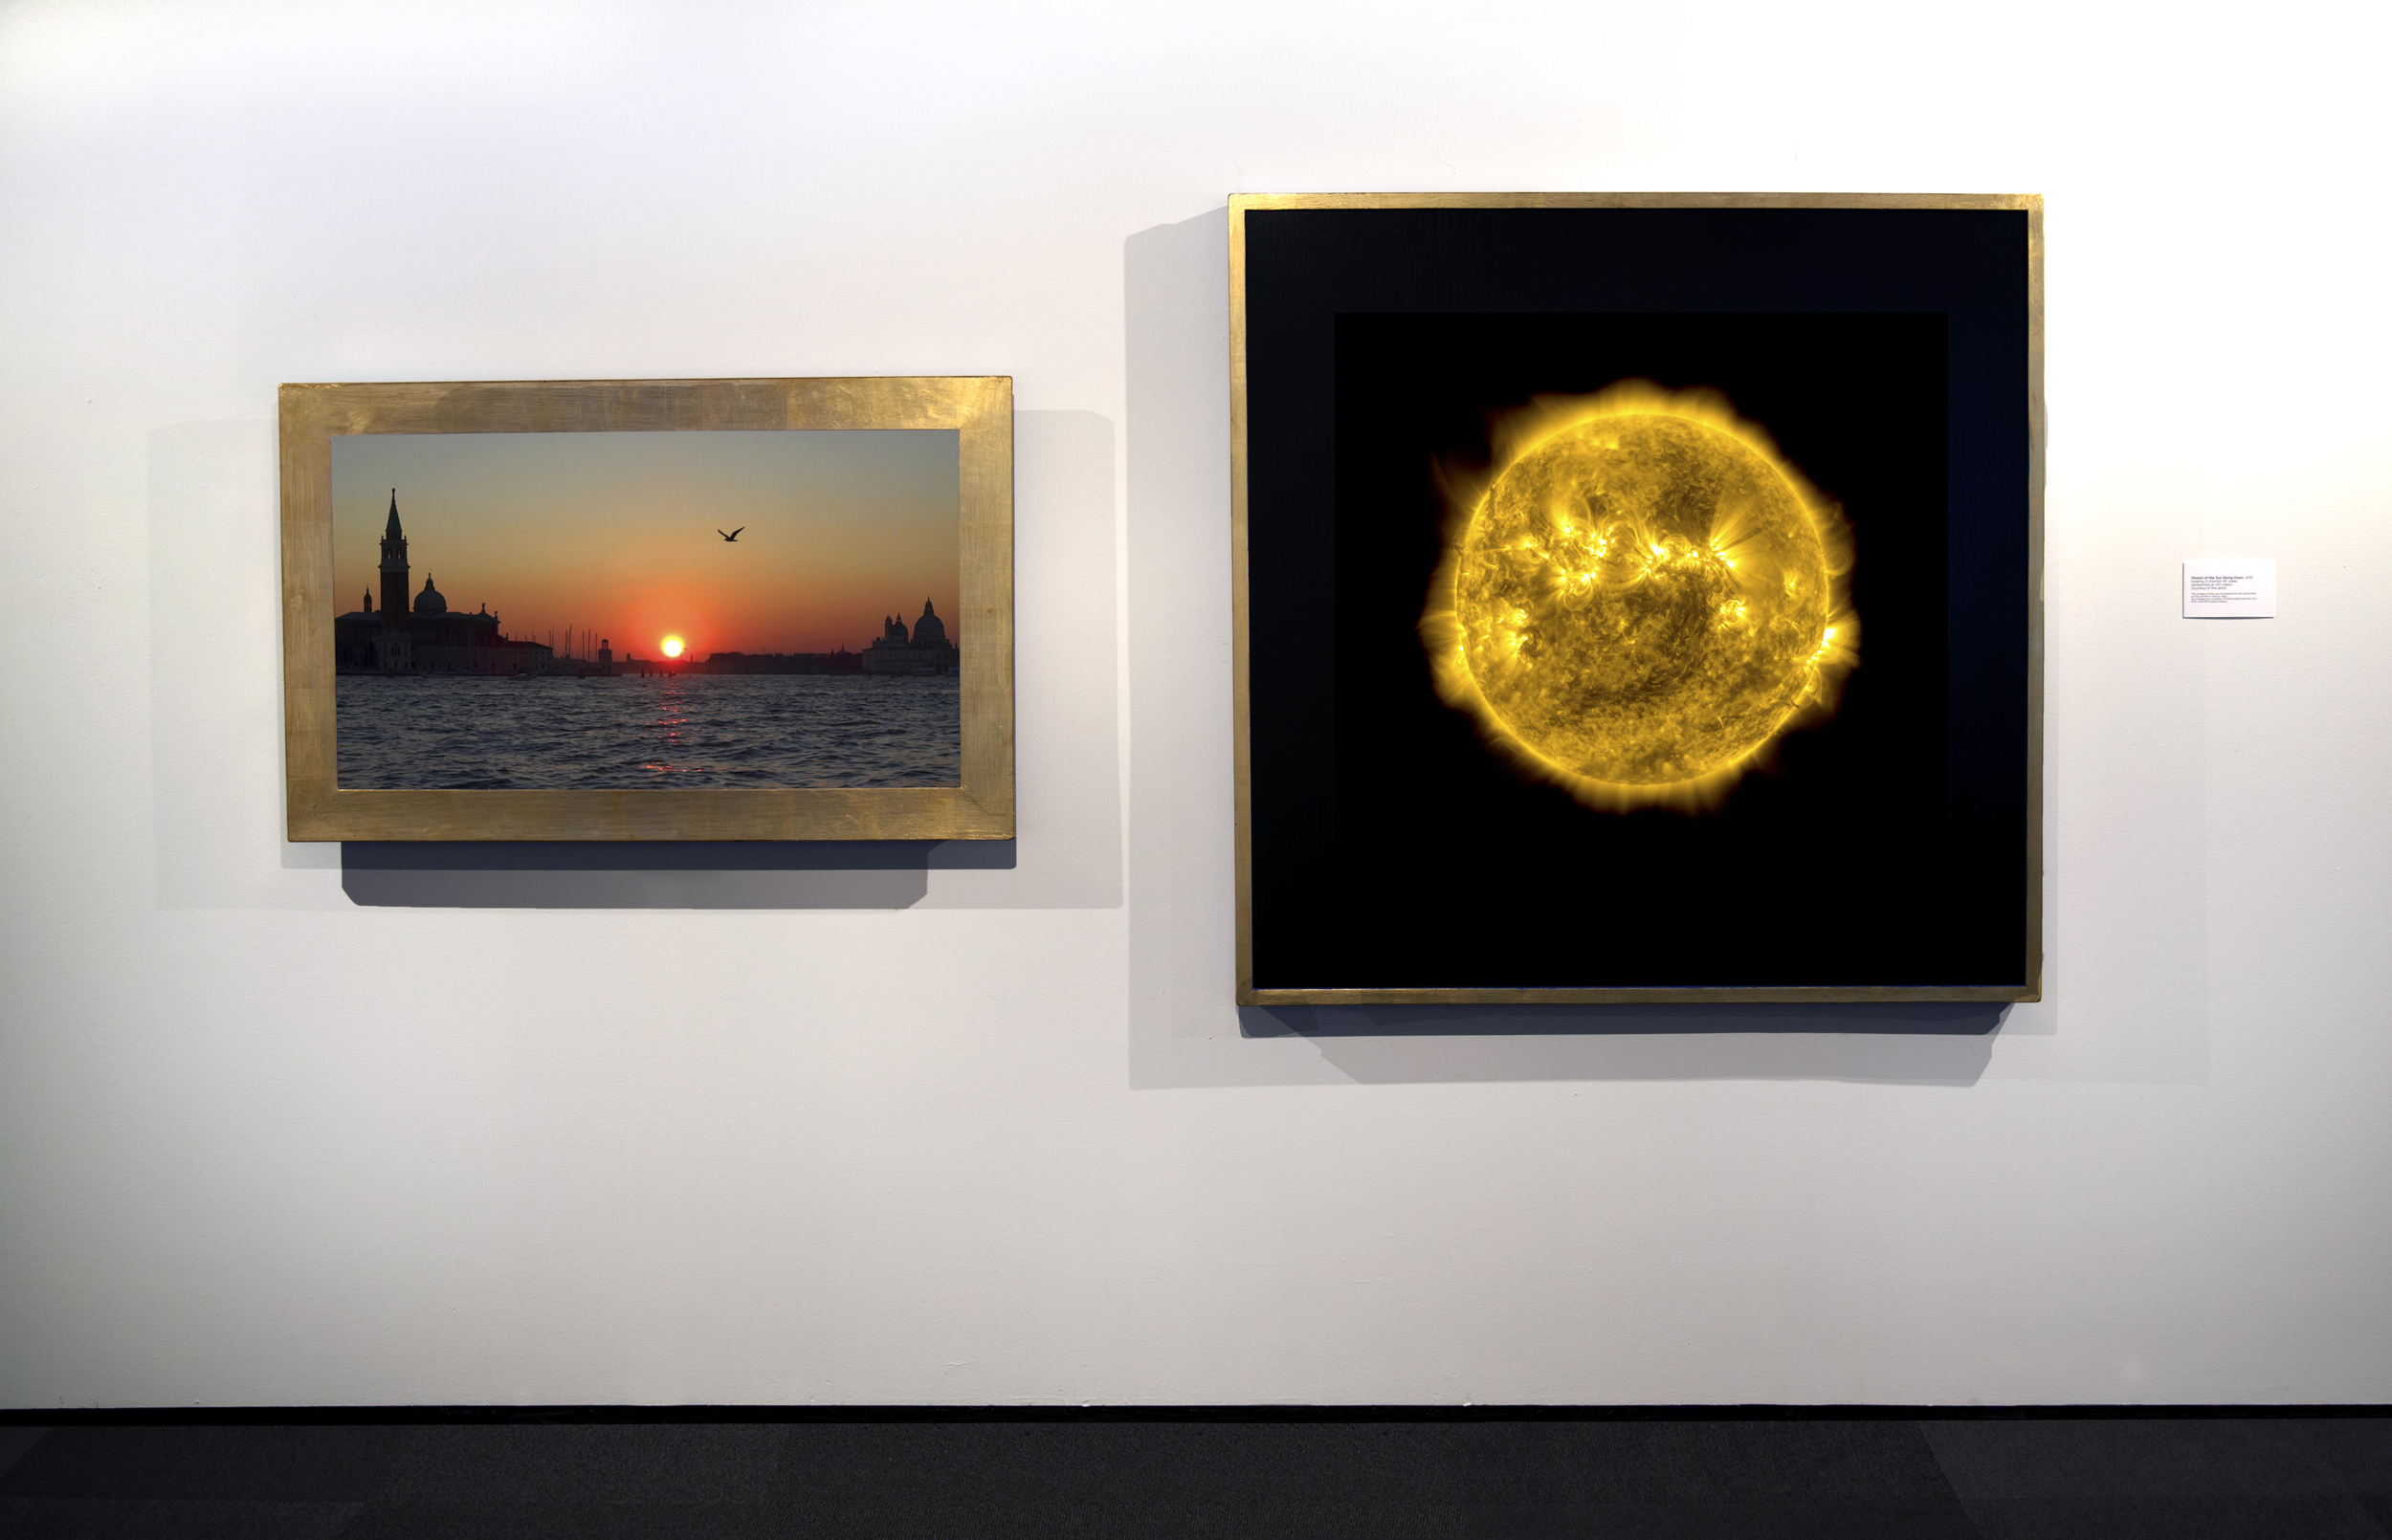 Dan Hudson, Illusion of the Sun Going Down (2 channel video), 2015